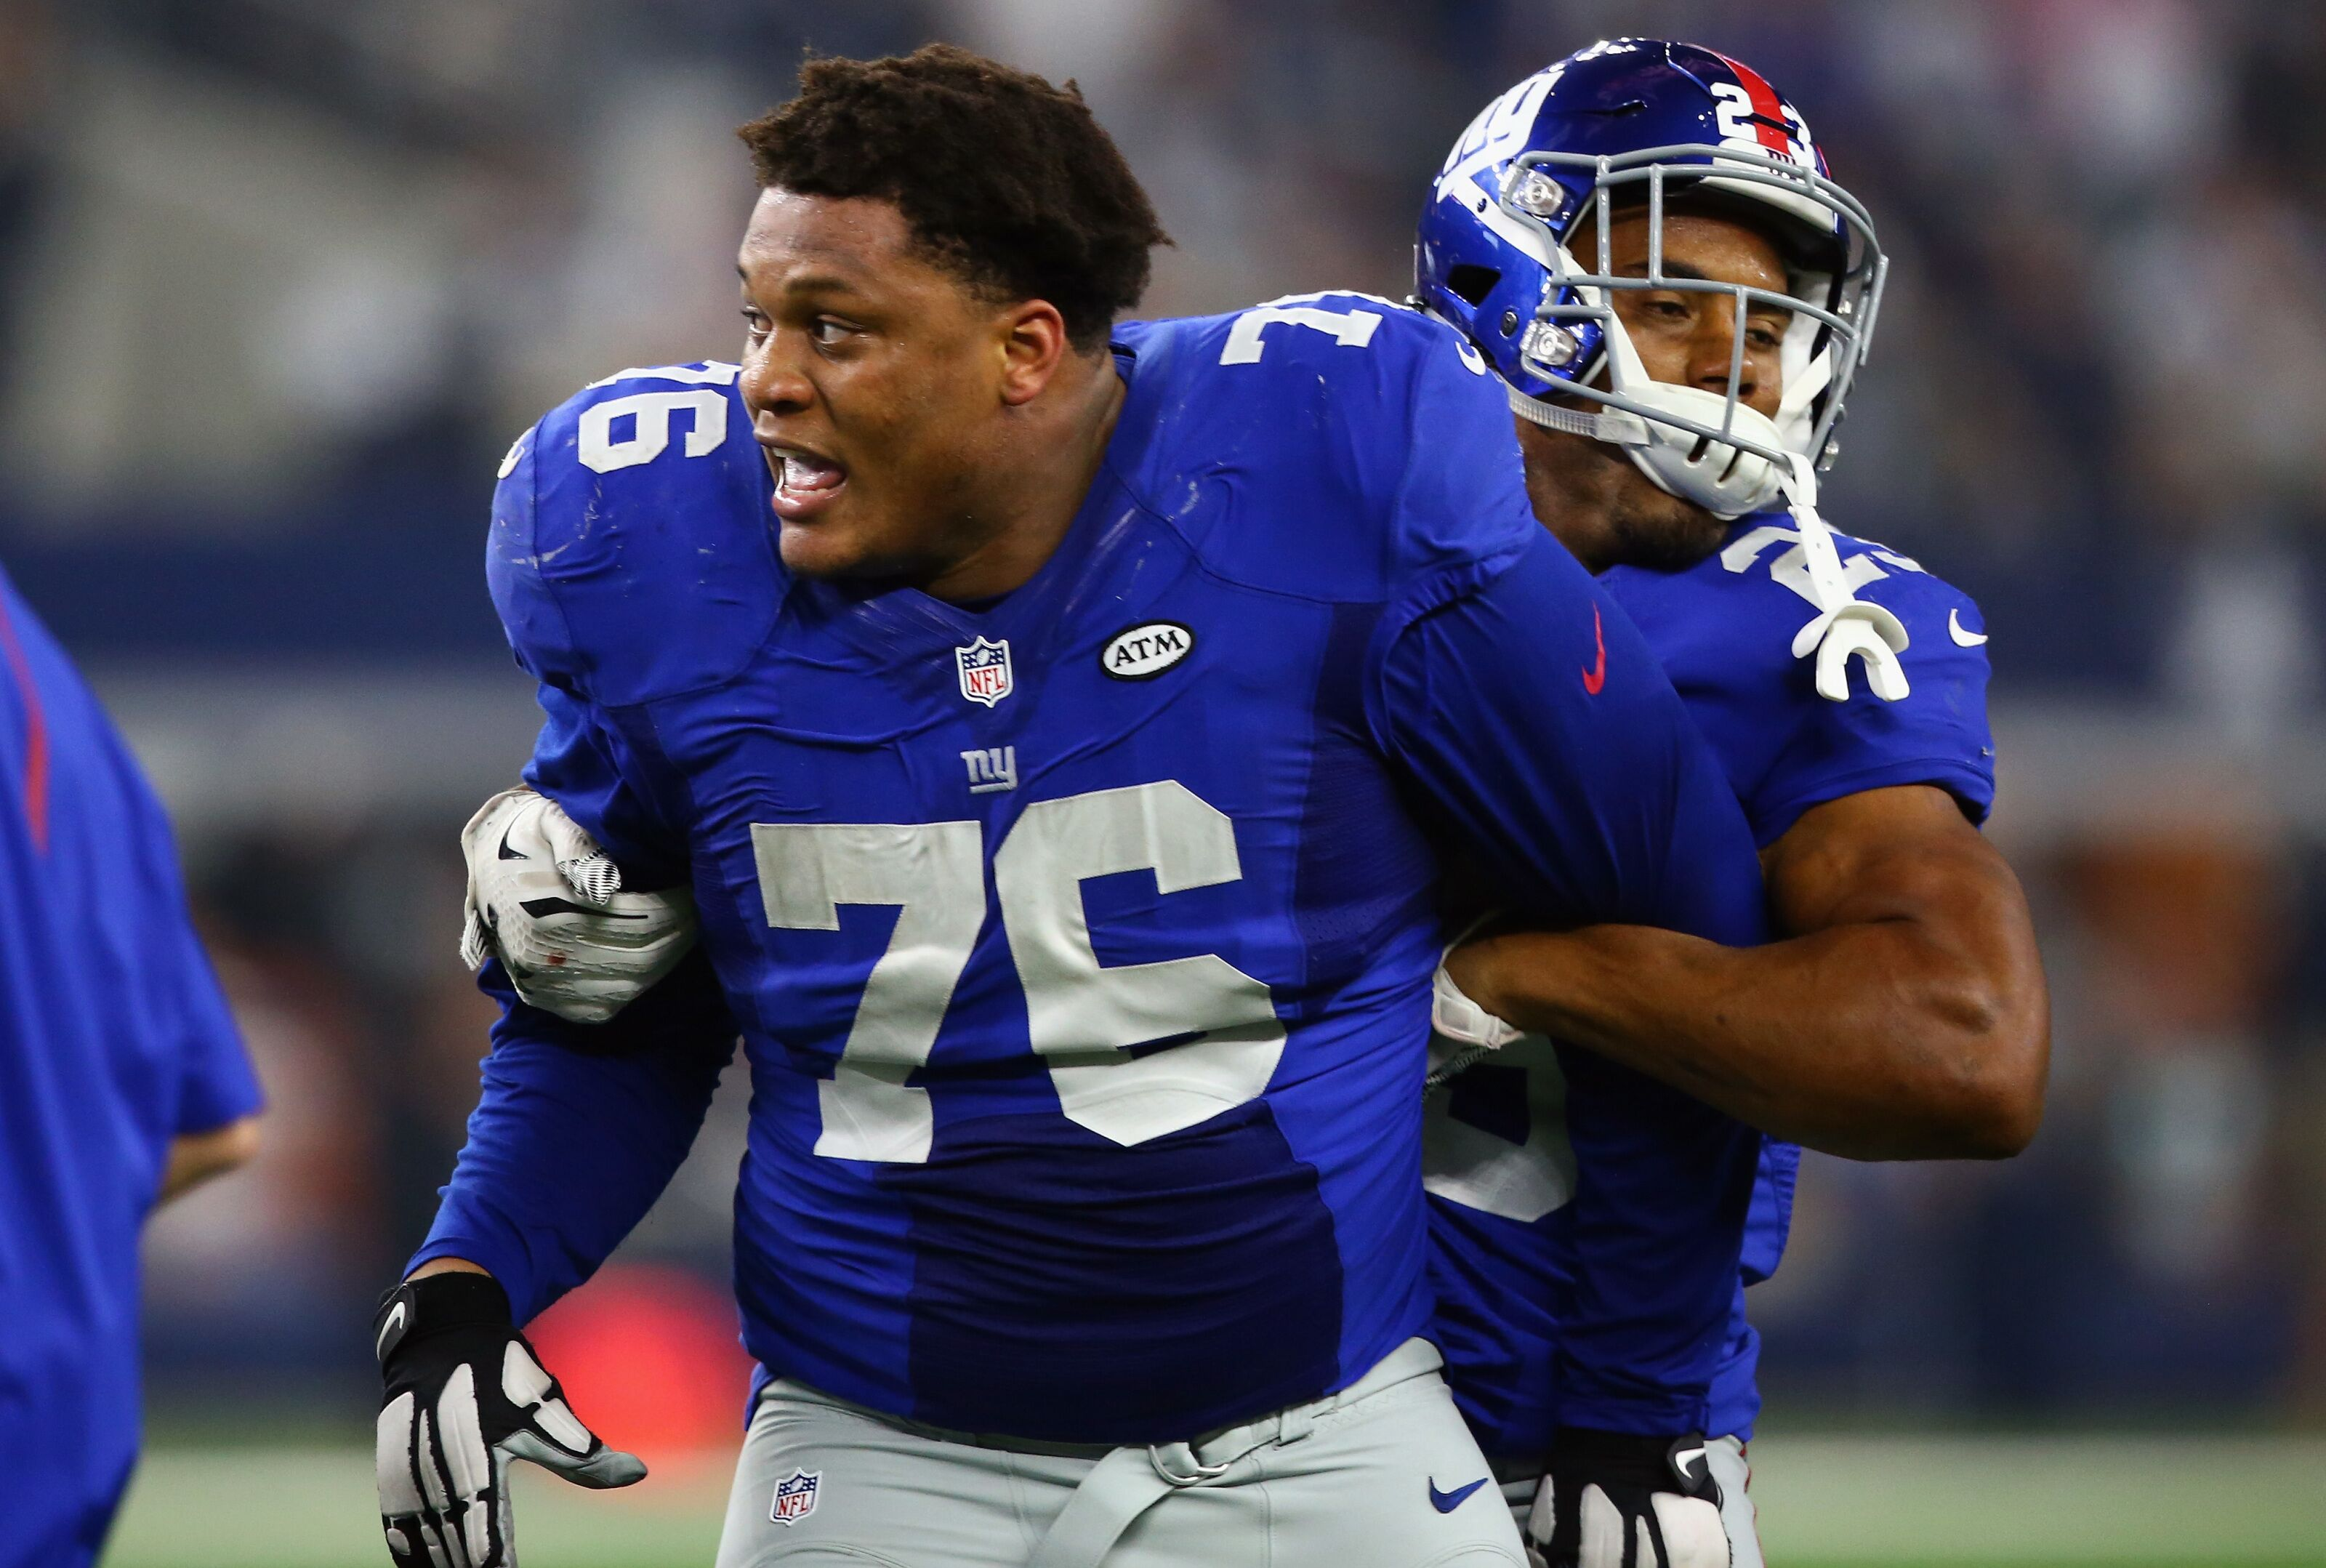 Redskins sign former Jaguars and Giants tackle Ereck Flowers